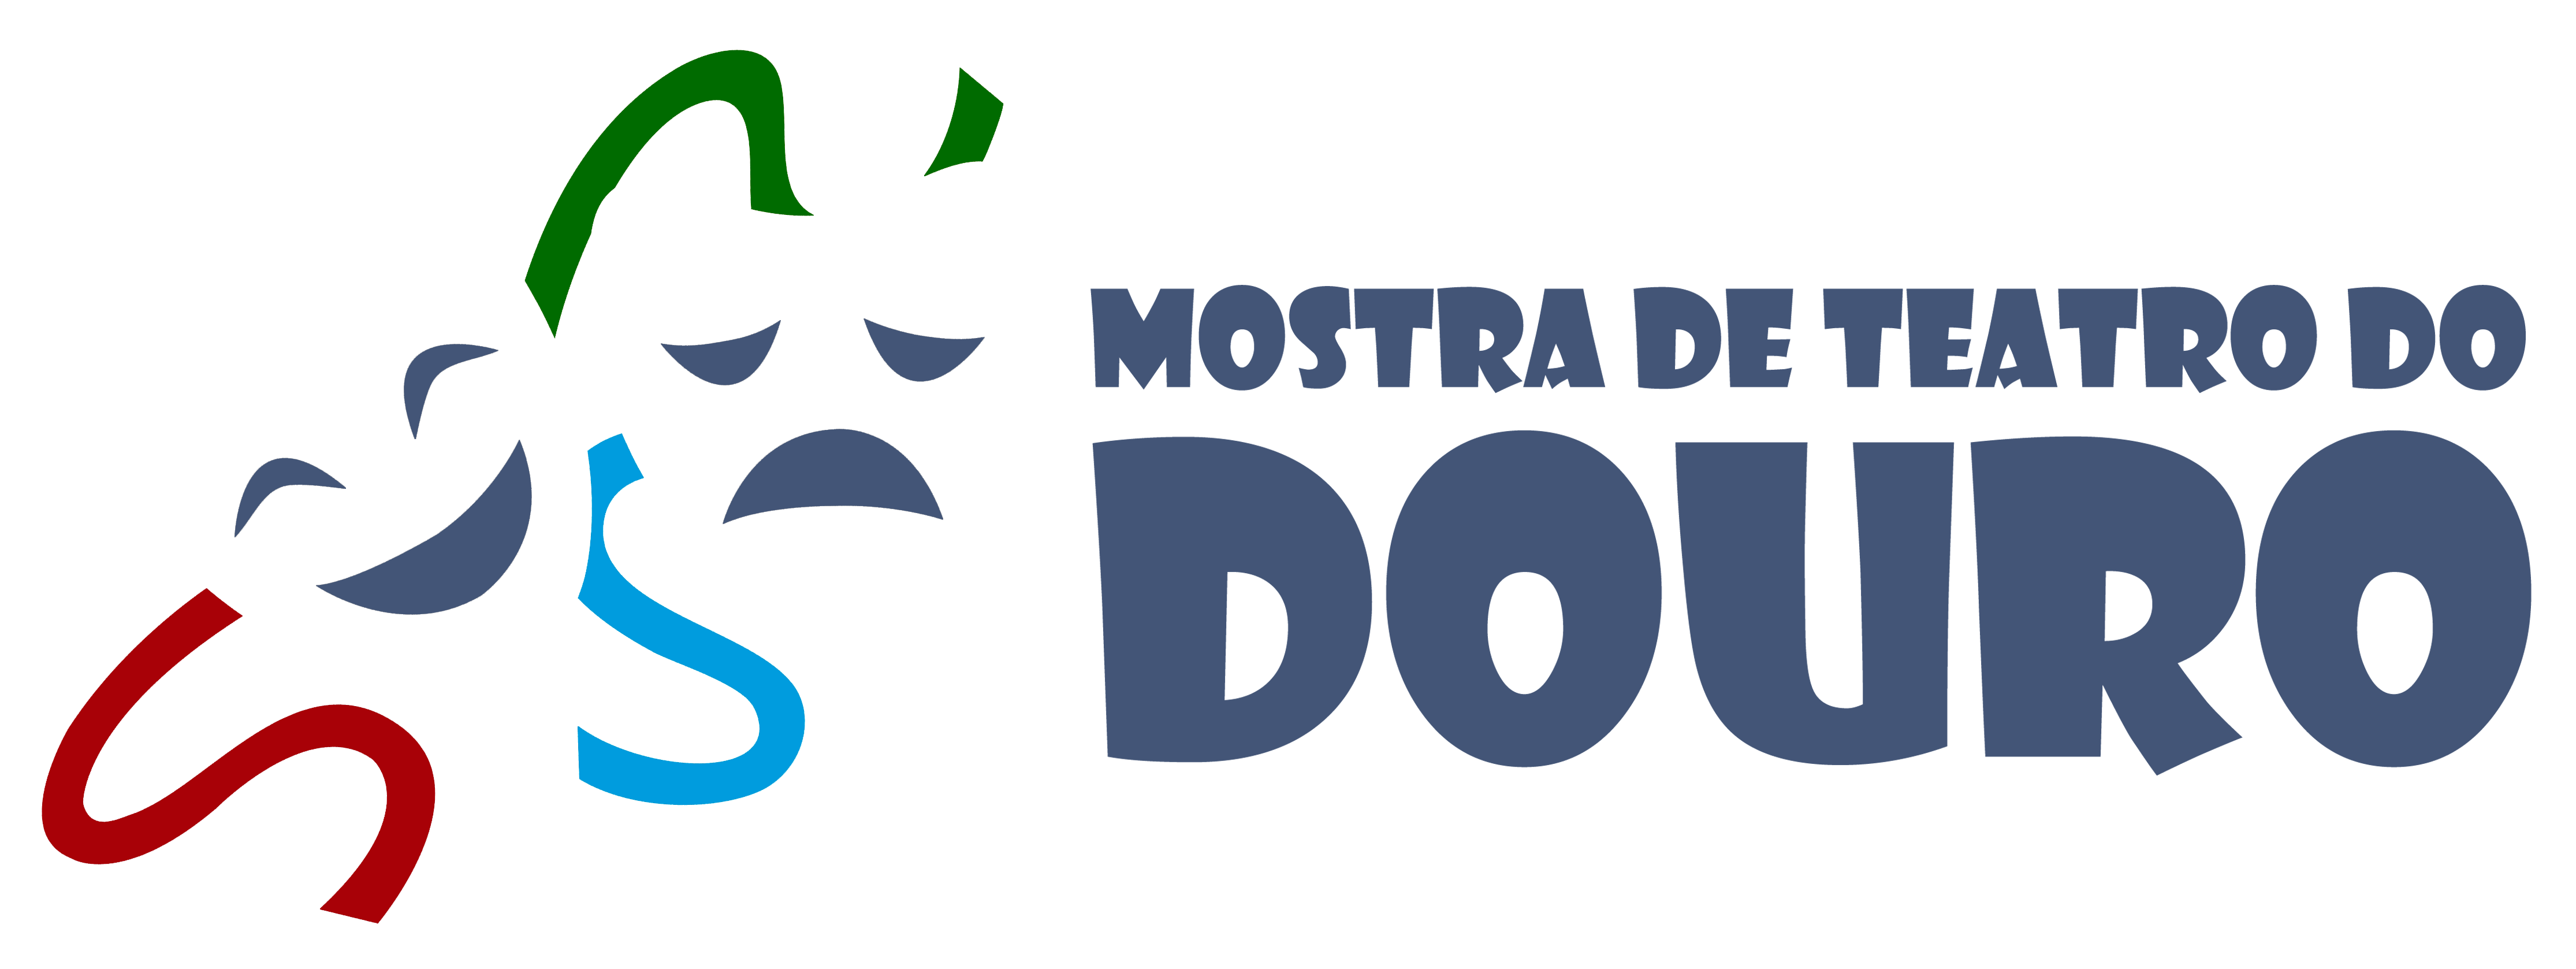 logo_mostrateatrodouro.png